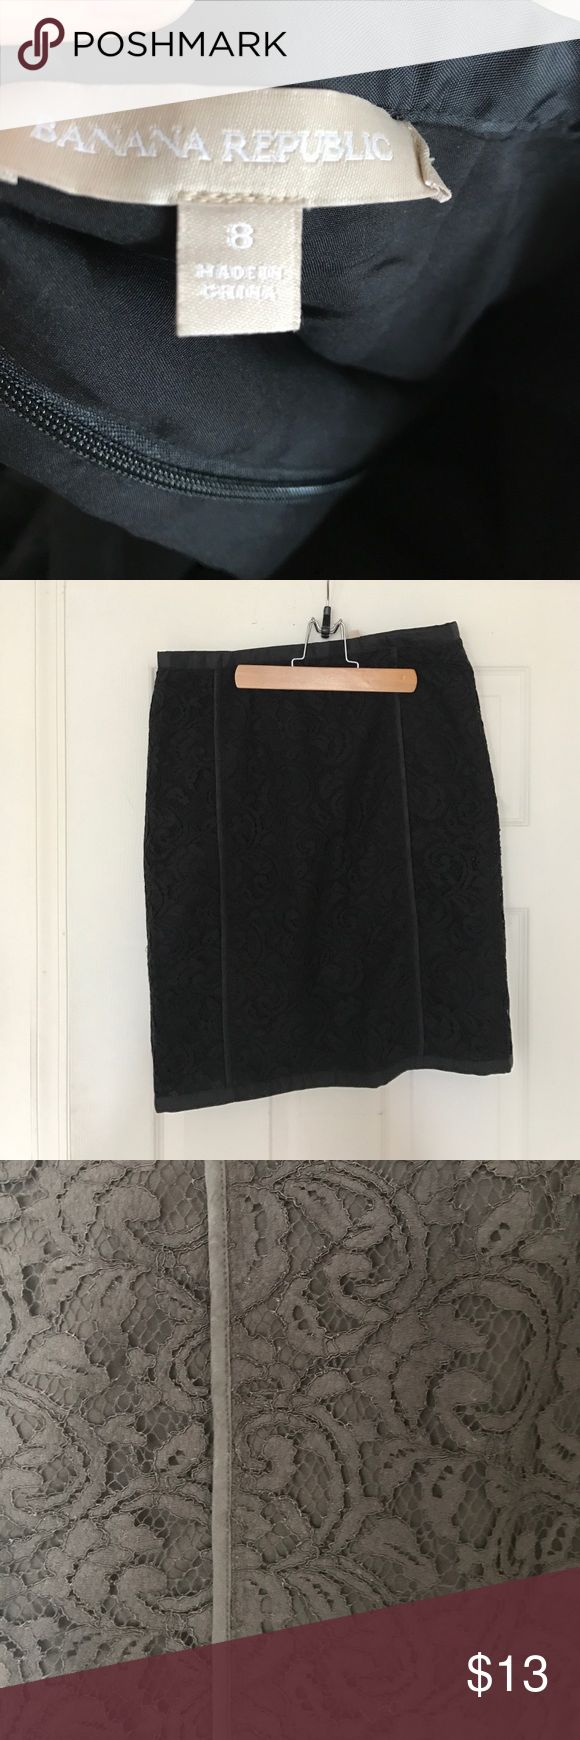 Banana Republic Black Lace Pencil Skirt Banana Republic Black lace pencil skirt. Size 8. Banana Republic Skirts Pencil